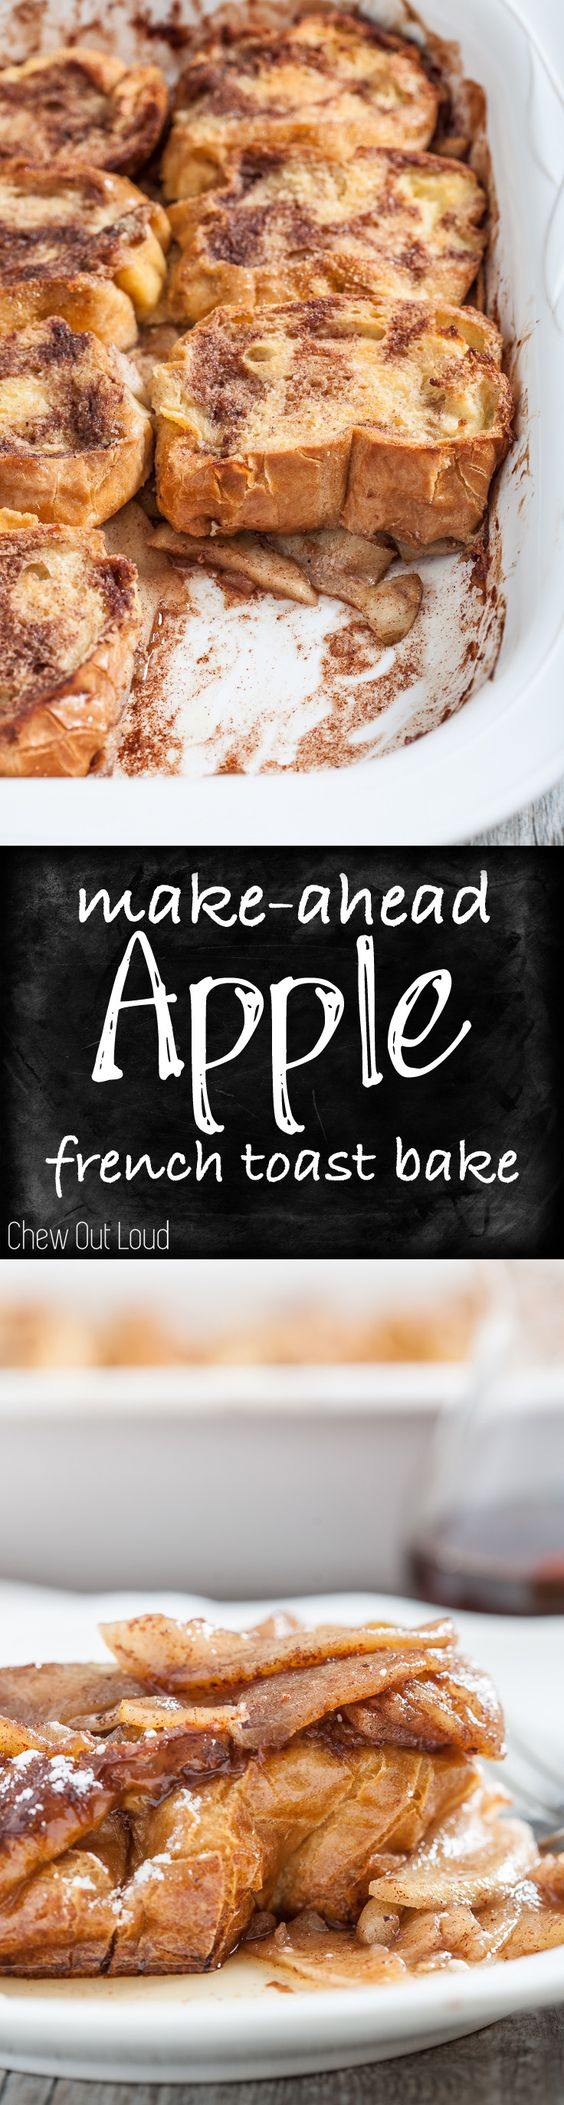 how to prepare french toast the night before